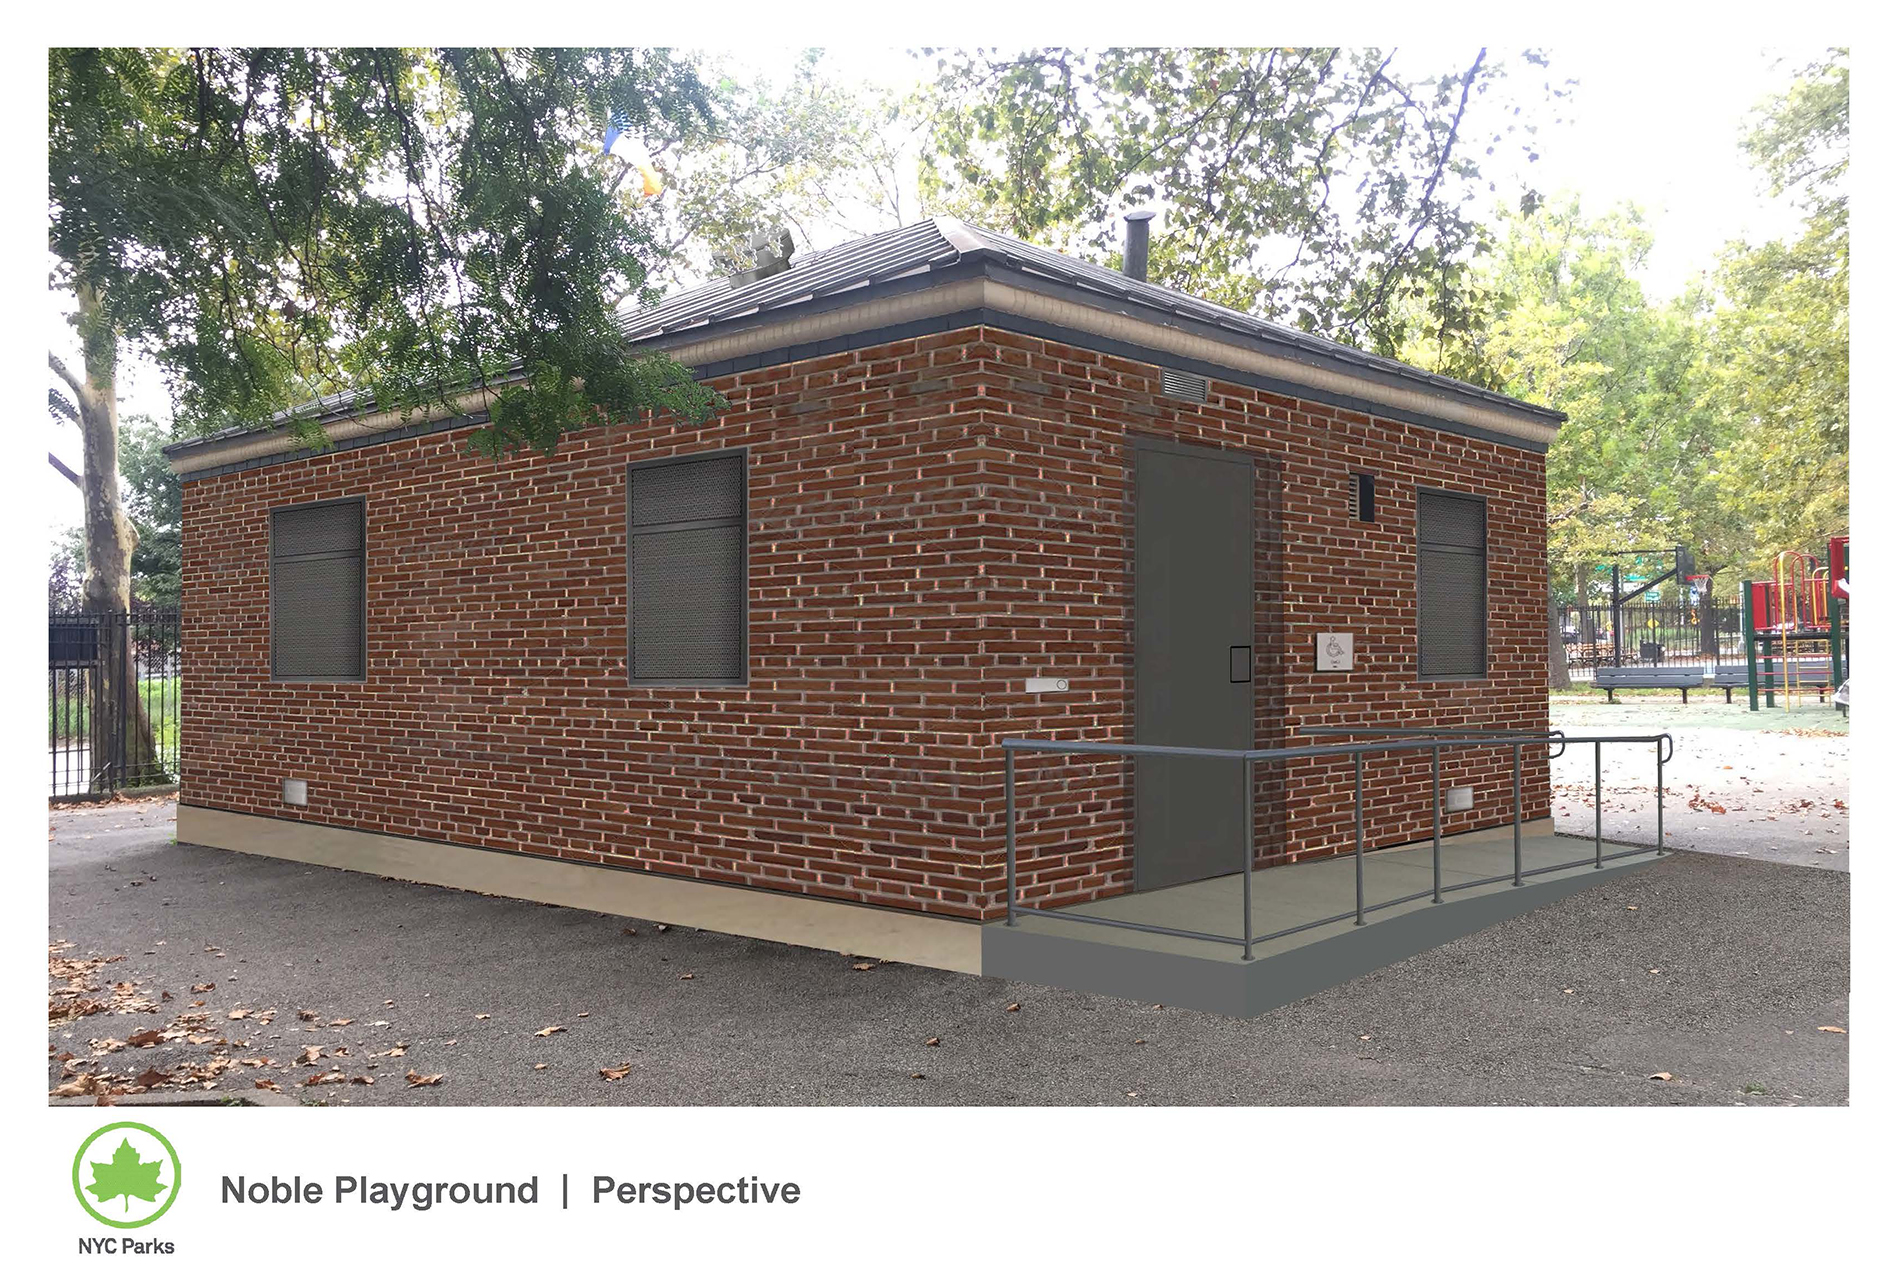 Design of Noble Playground Comfort Station Reconstruction